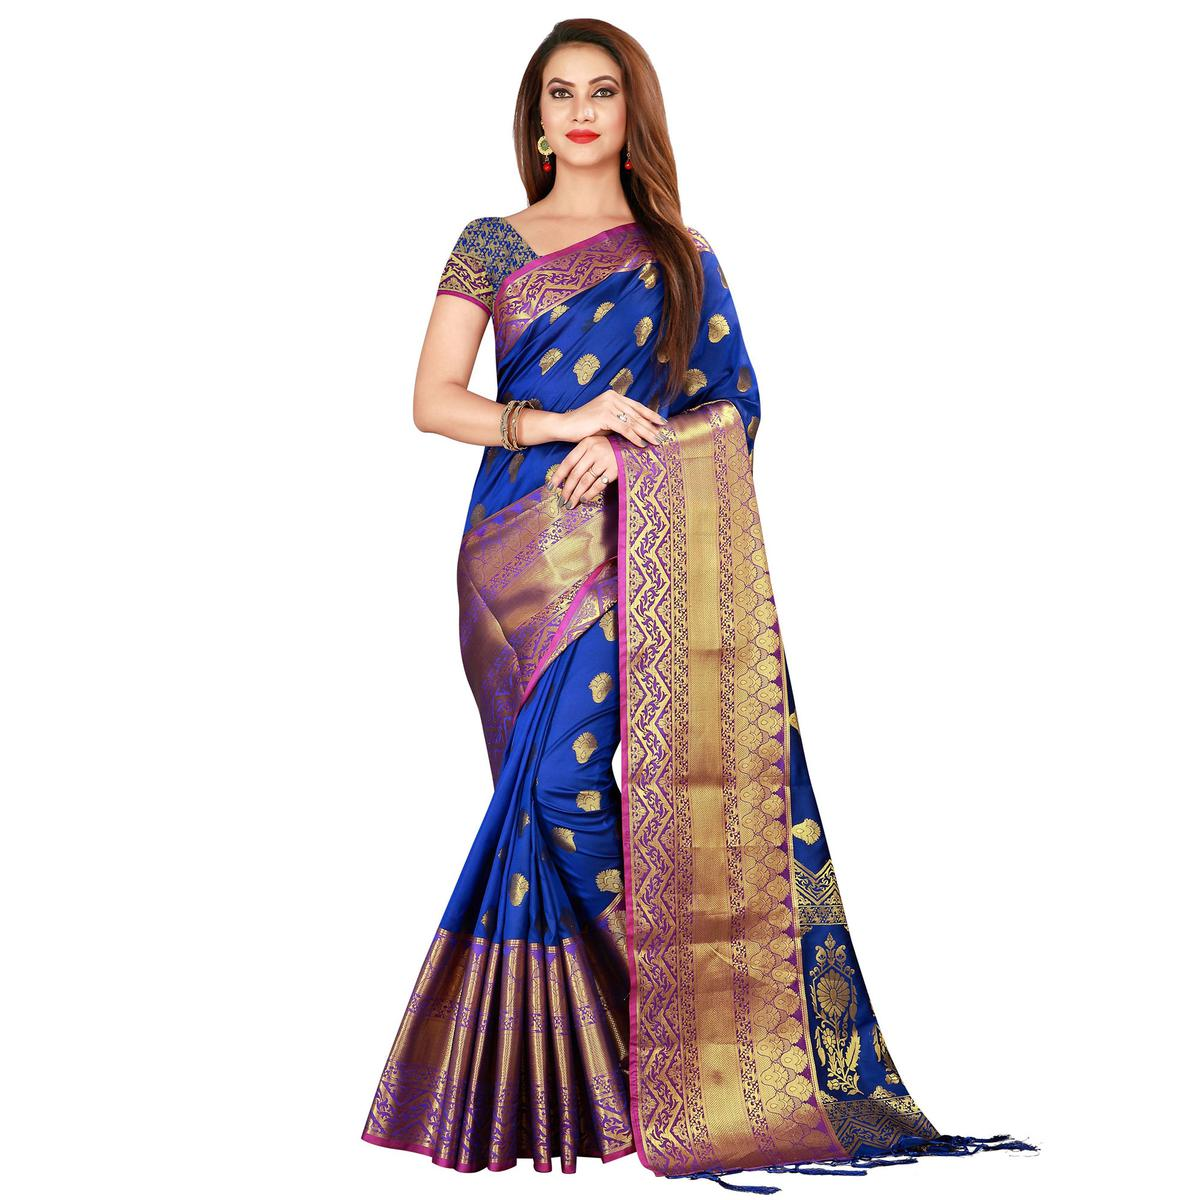 Sensational Blue Colored Festive Wear Woven Banarasi Silk Saree